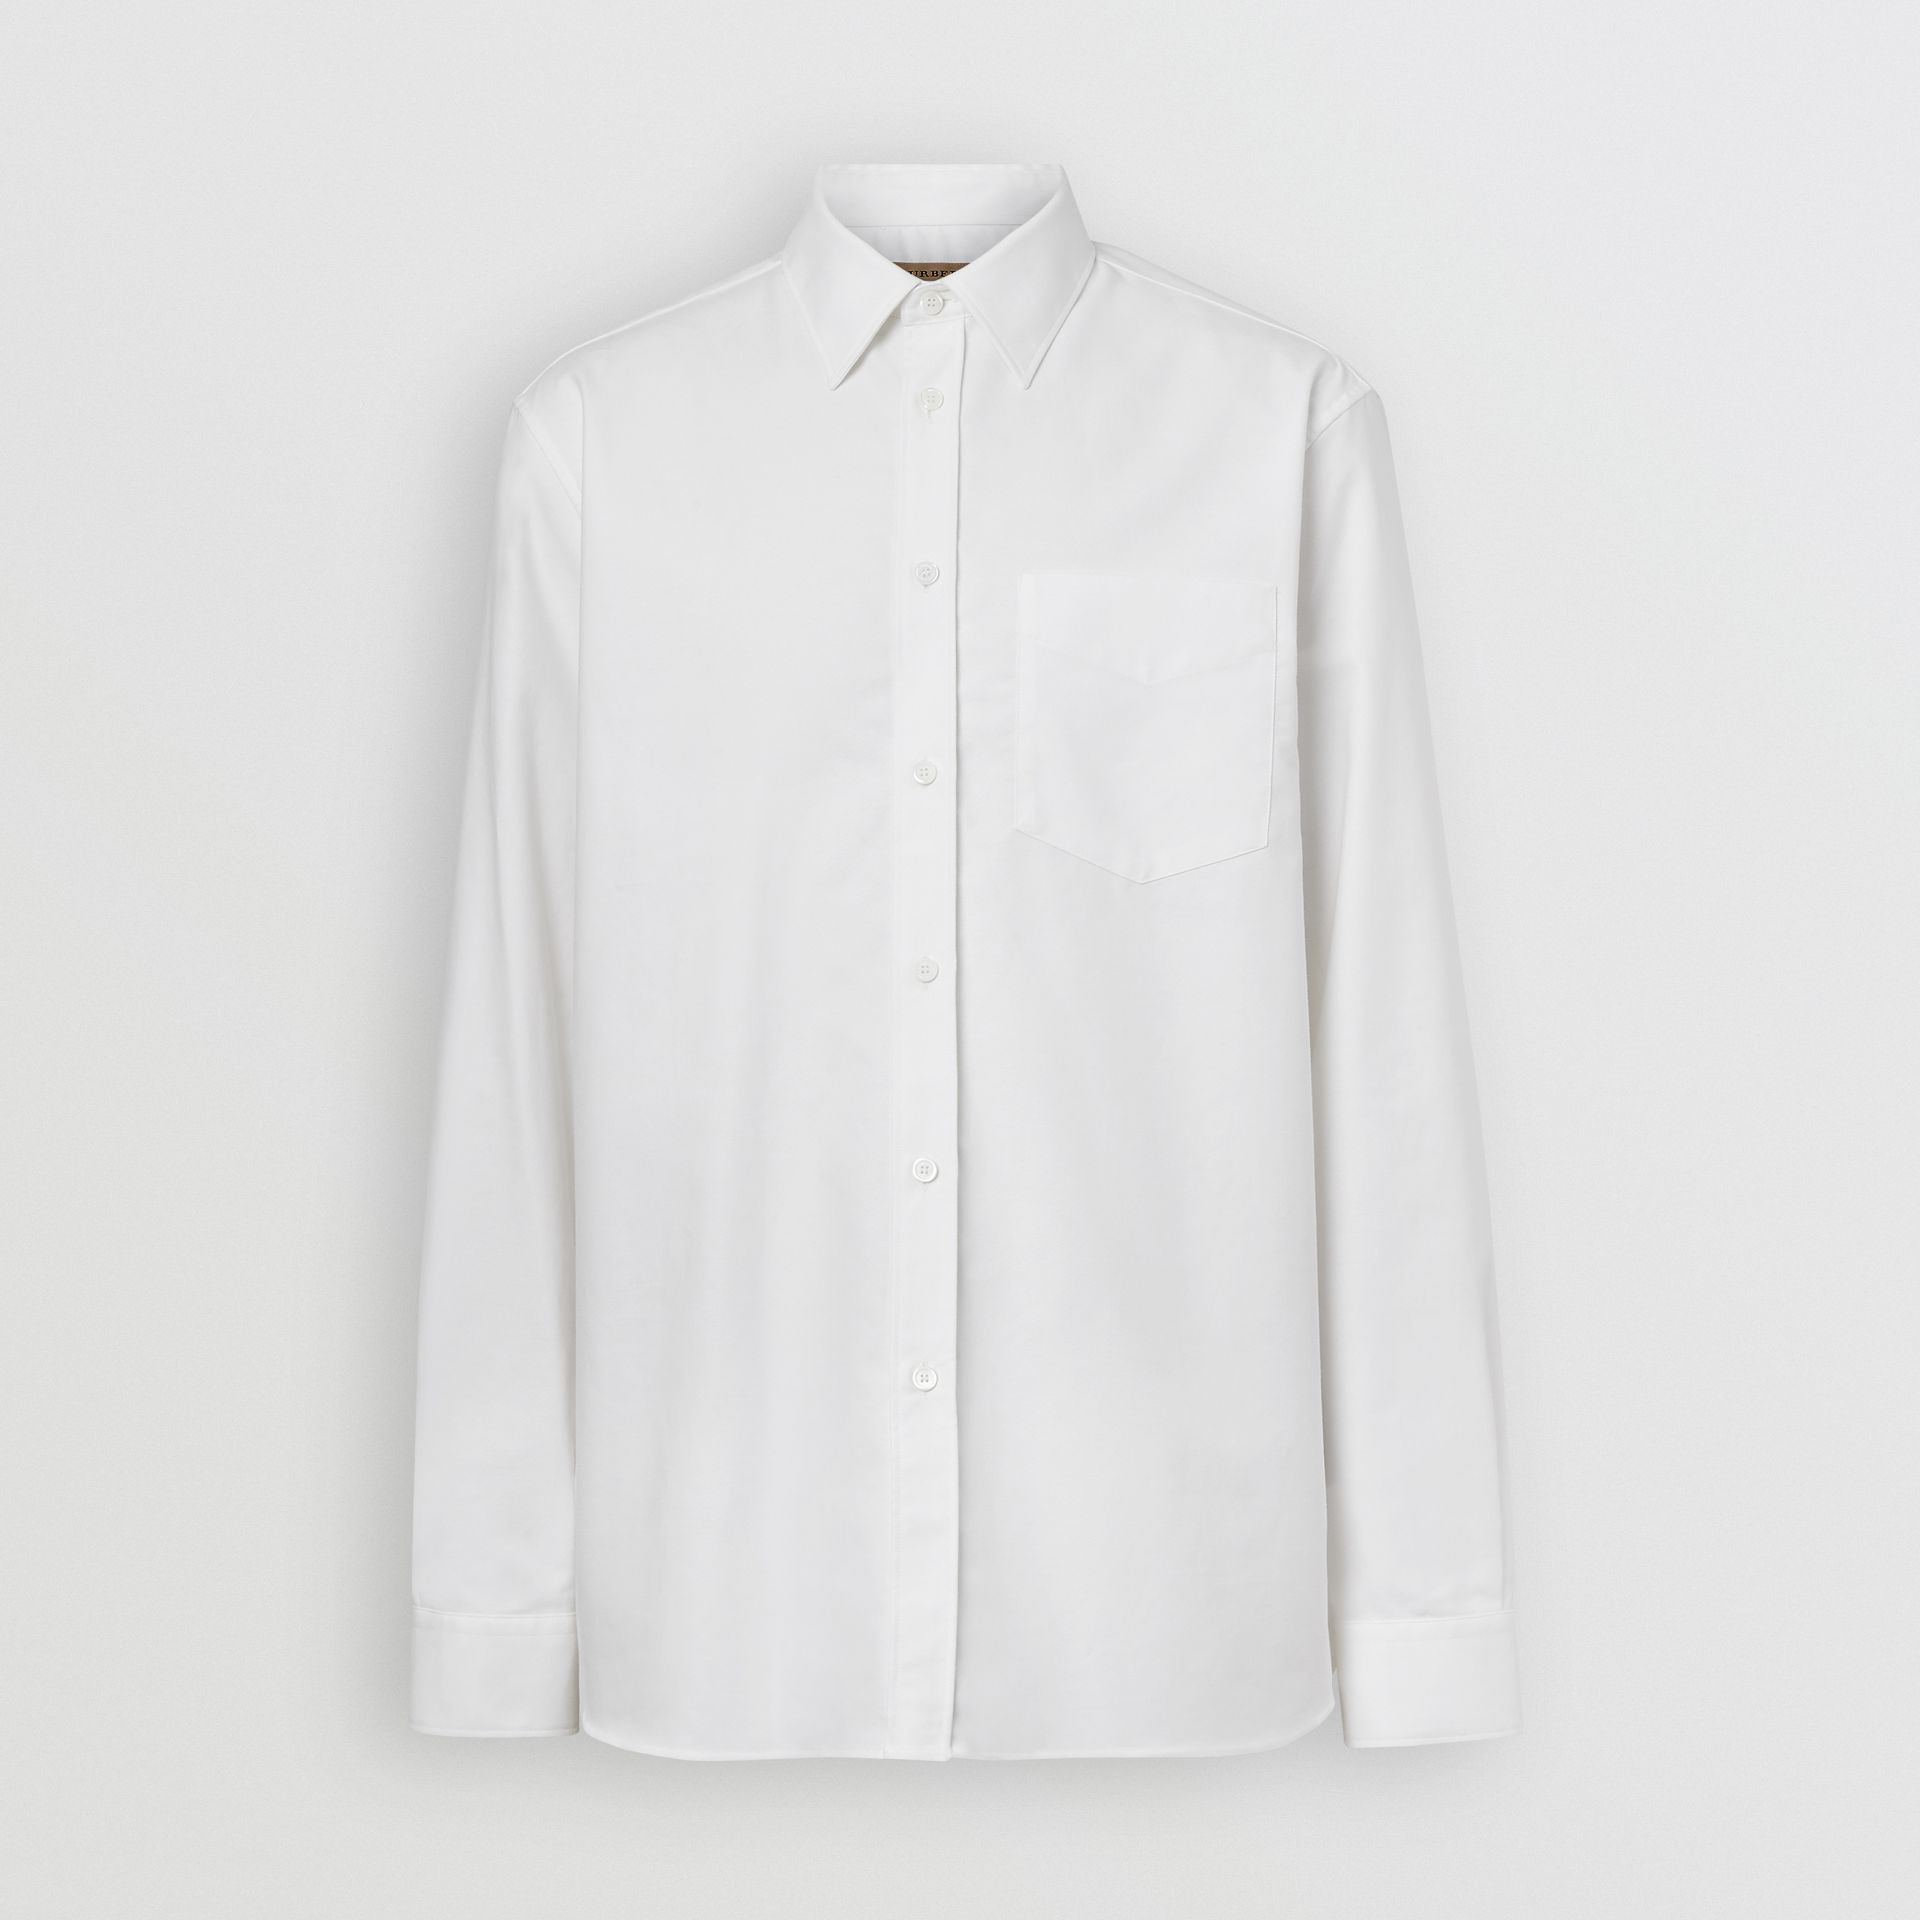 EKD Appliqué Cotton Oxford Shirt in White - Men | Burberry Singapore - gallery image 3